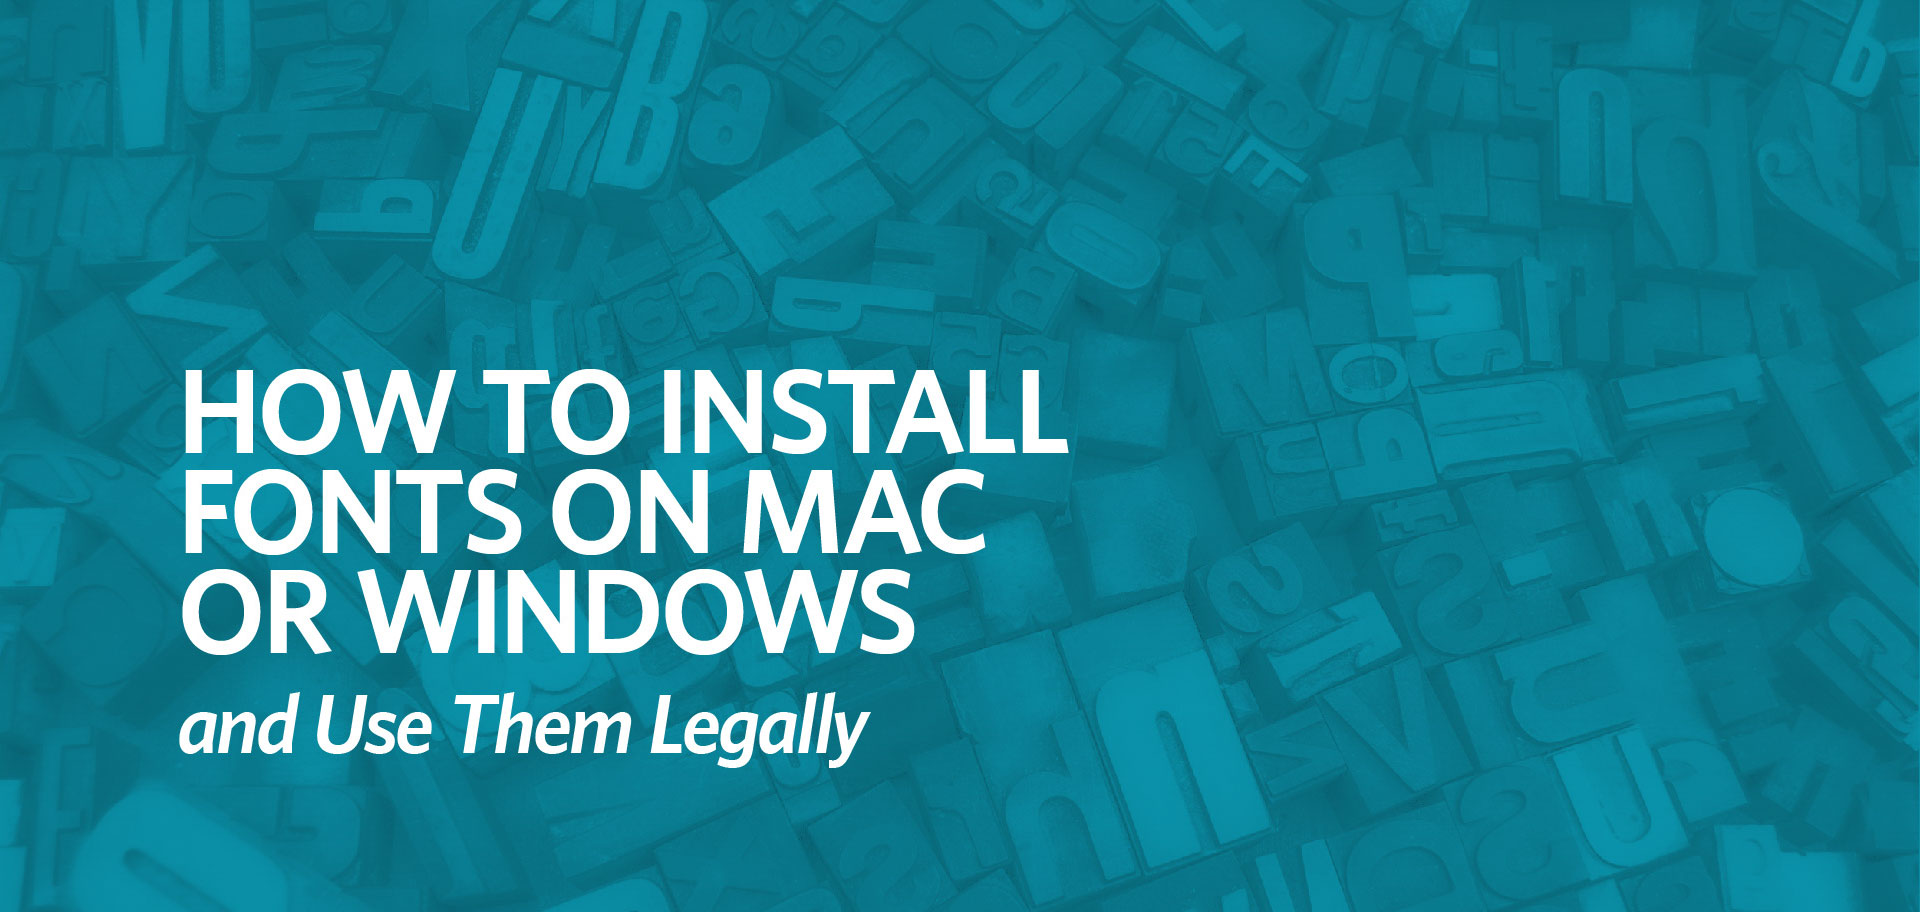 How to Install Fonts on Mac or Windows and Use Them Legally by Kettle Fire Creative install fonts How to Install Fonts on Mac or Windows and Use Them Legally install fonts fi